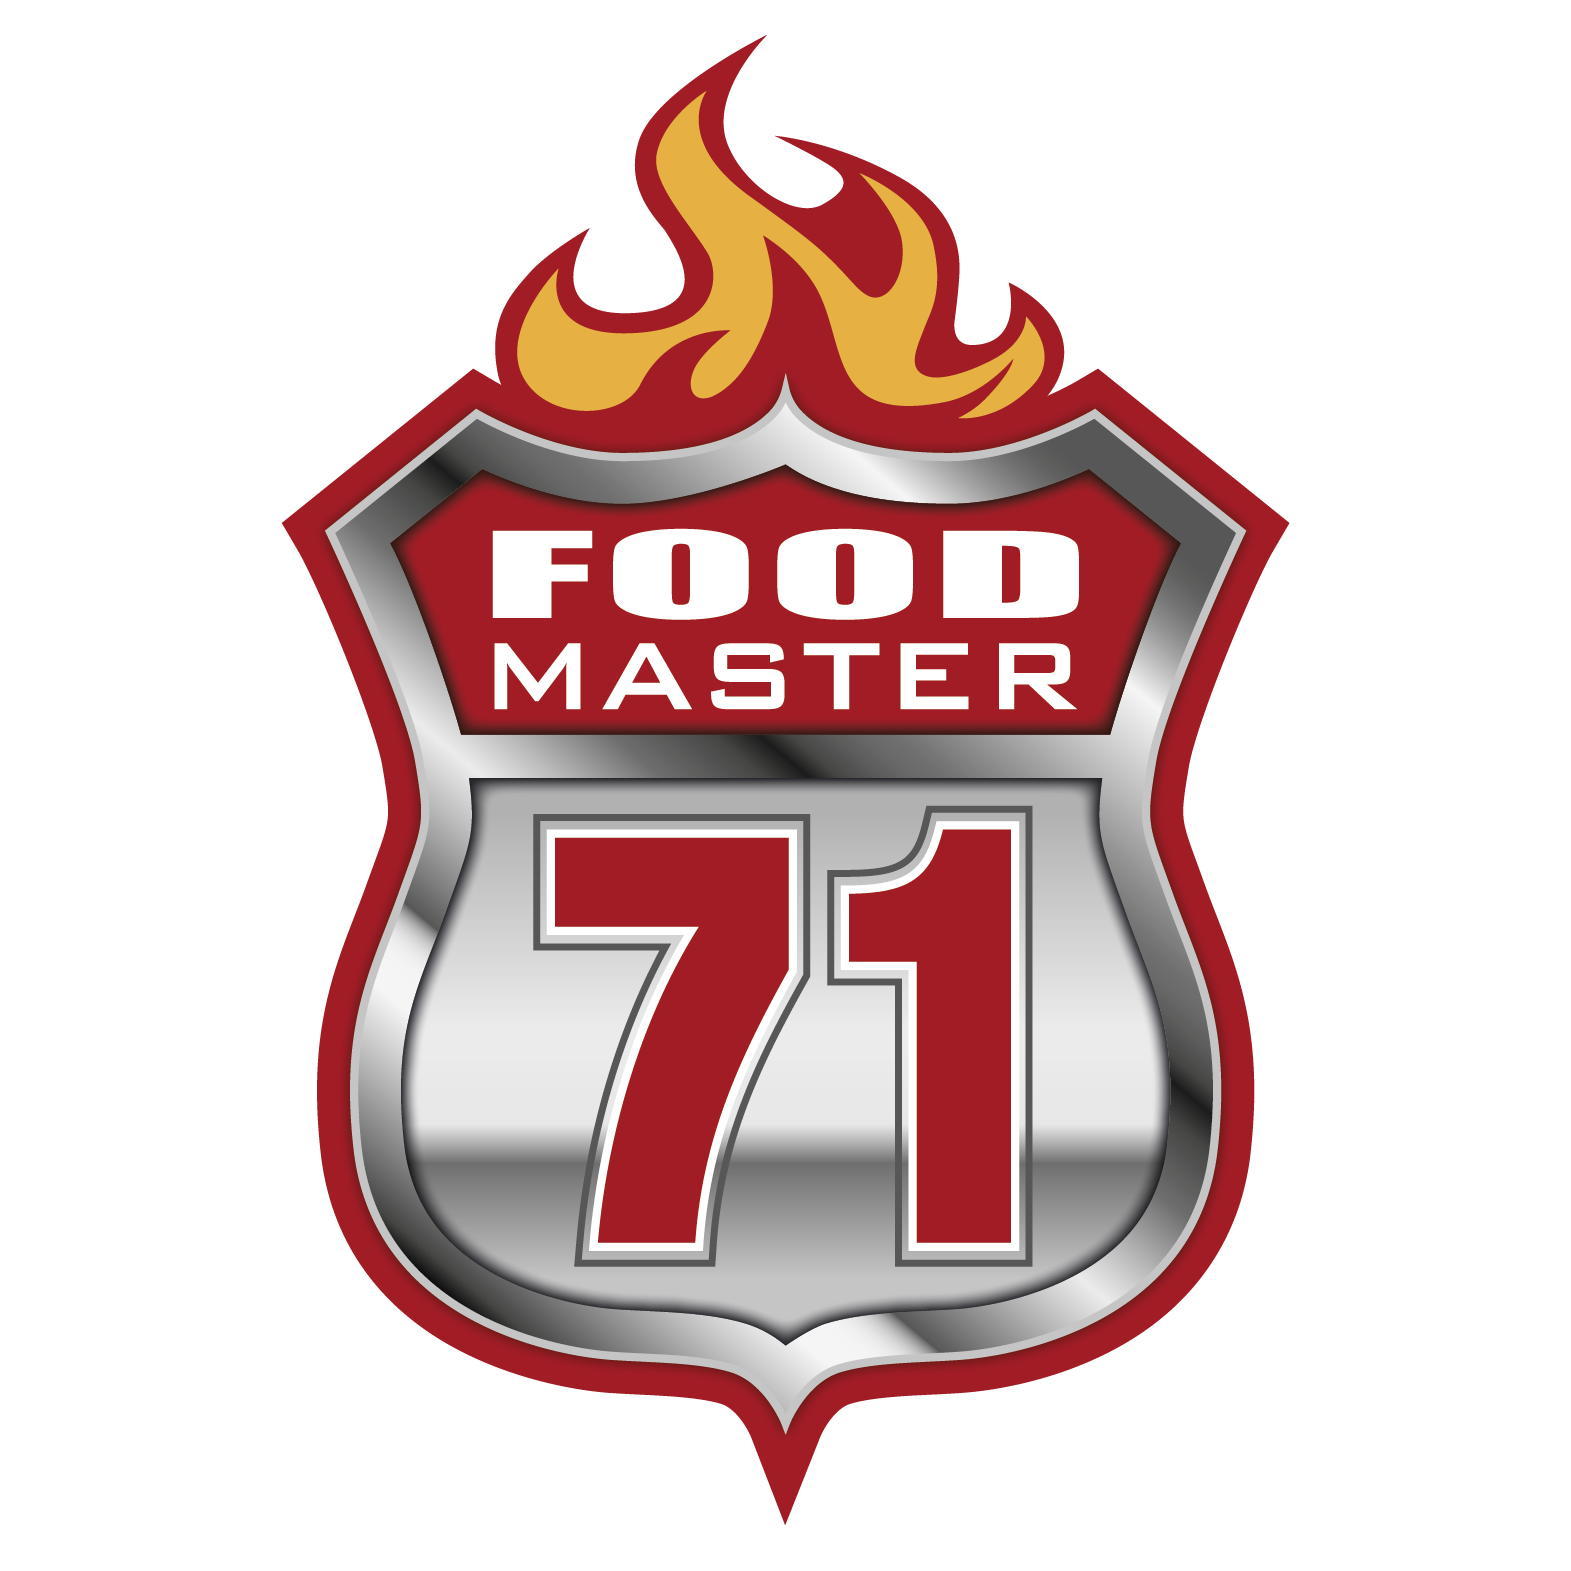 Food Master 71 - Virnsberger Str. 71, 90431 Nürnberg